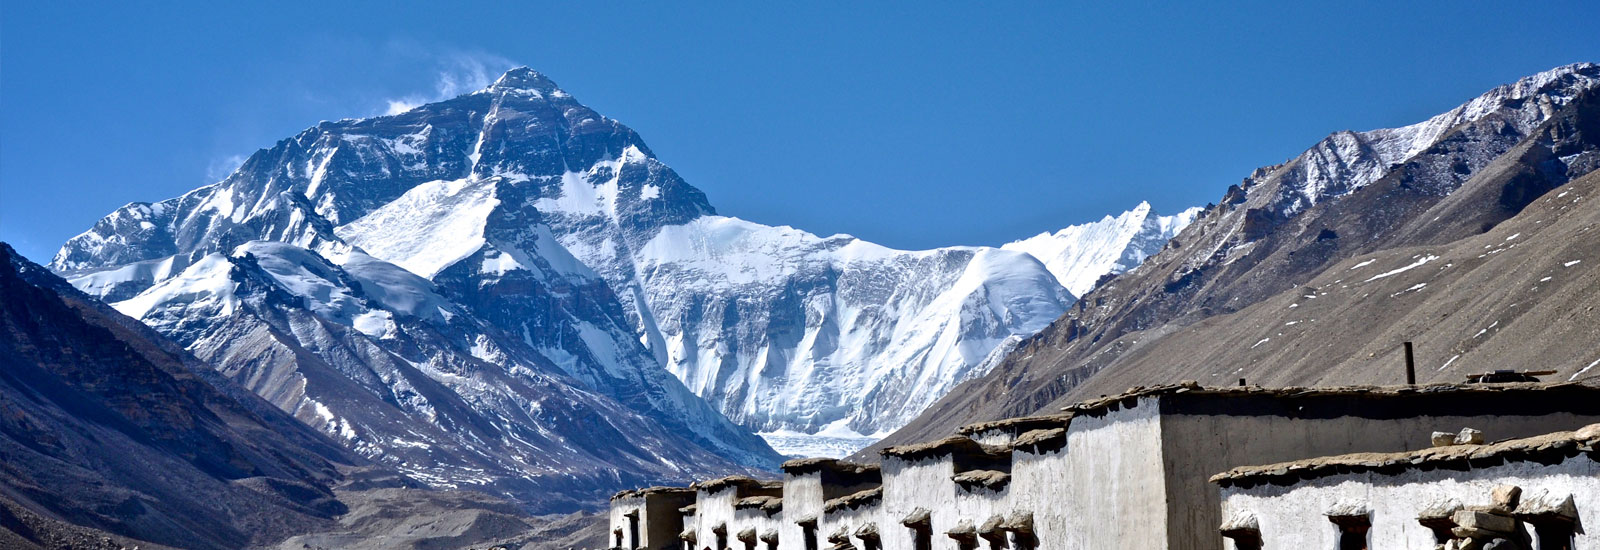 Mt Everest View from Base Camp